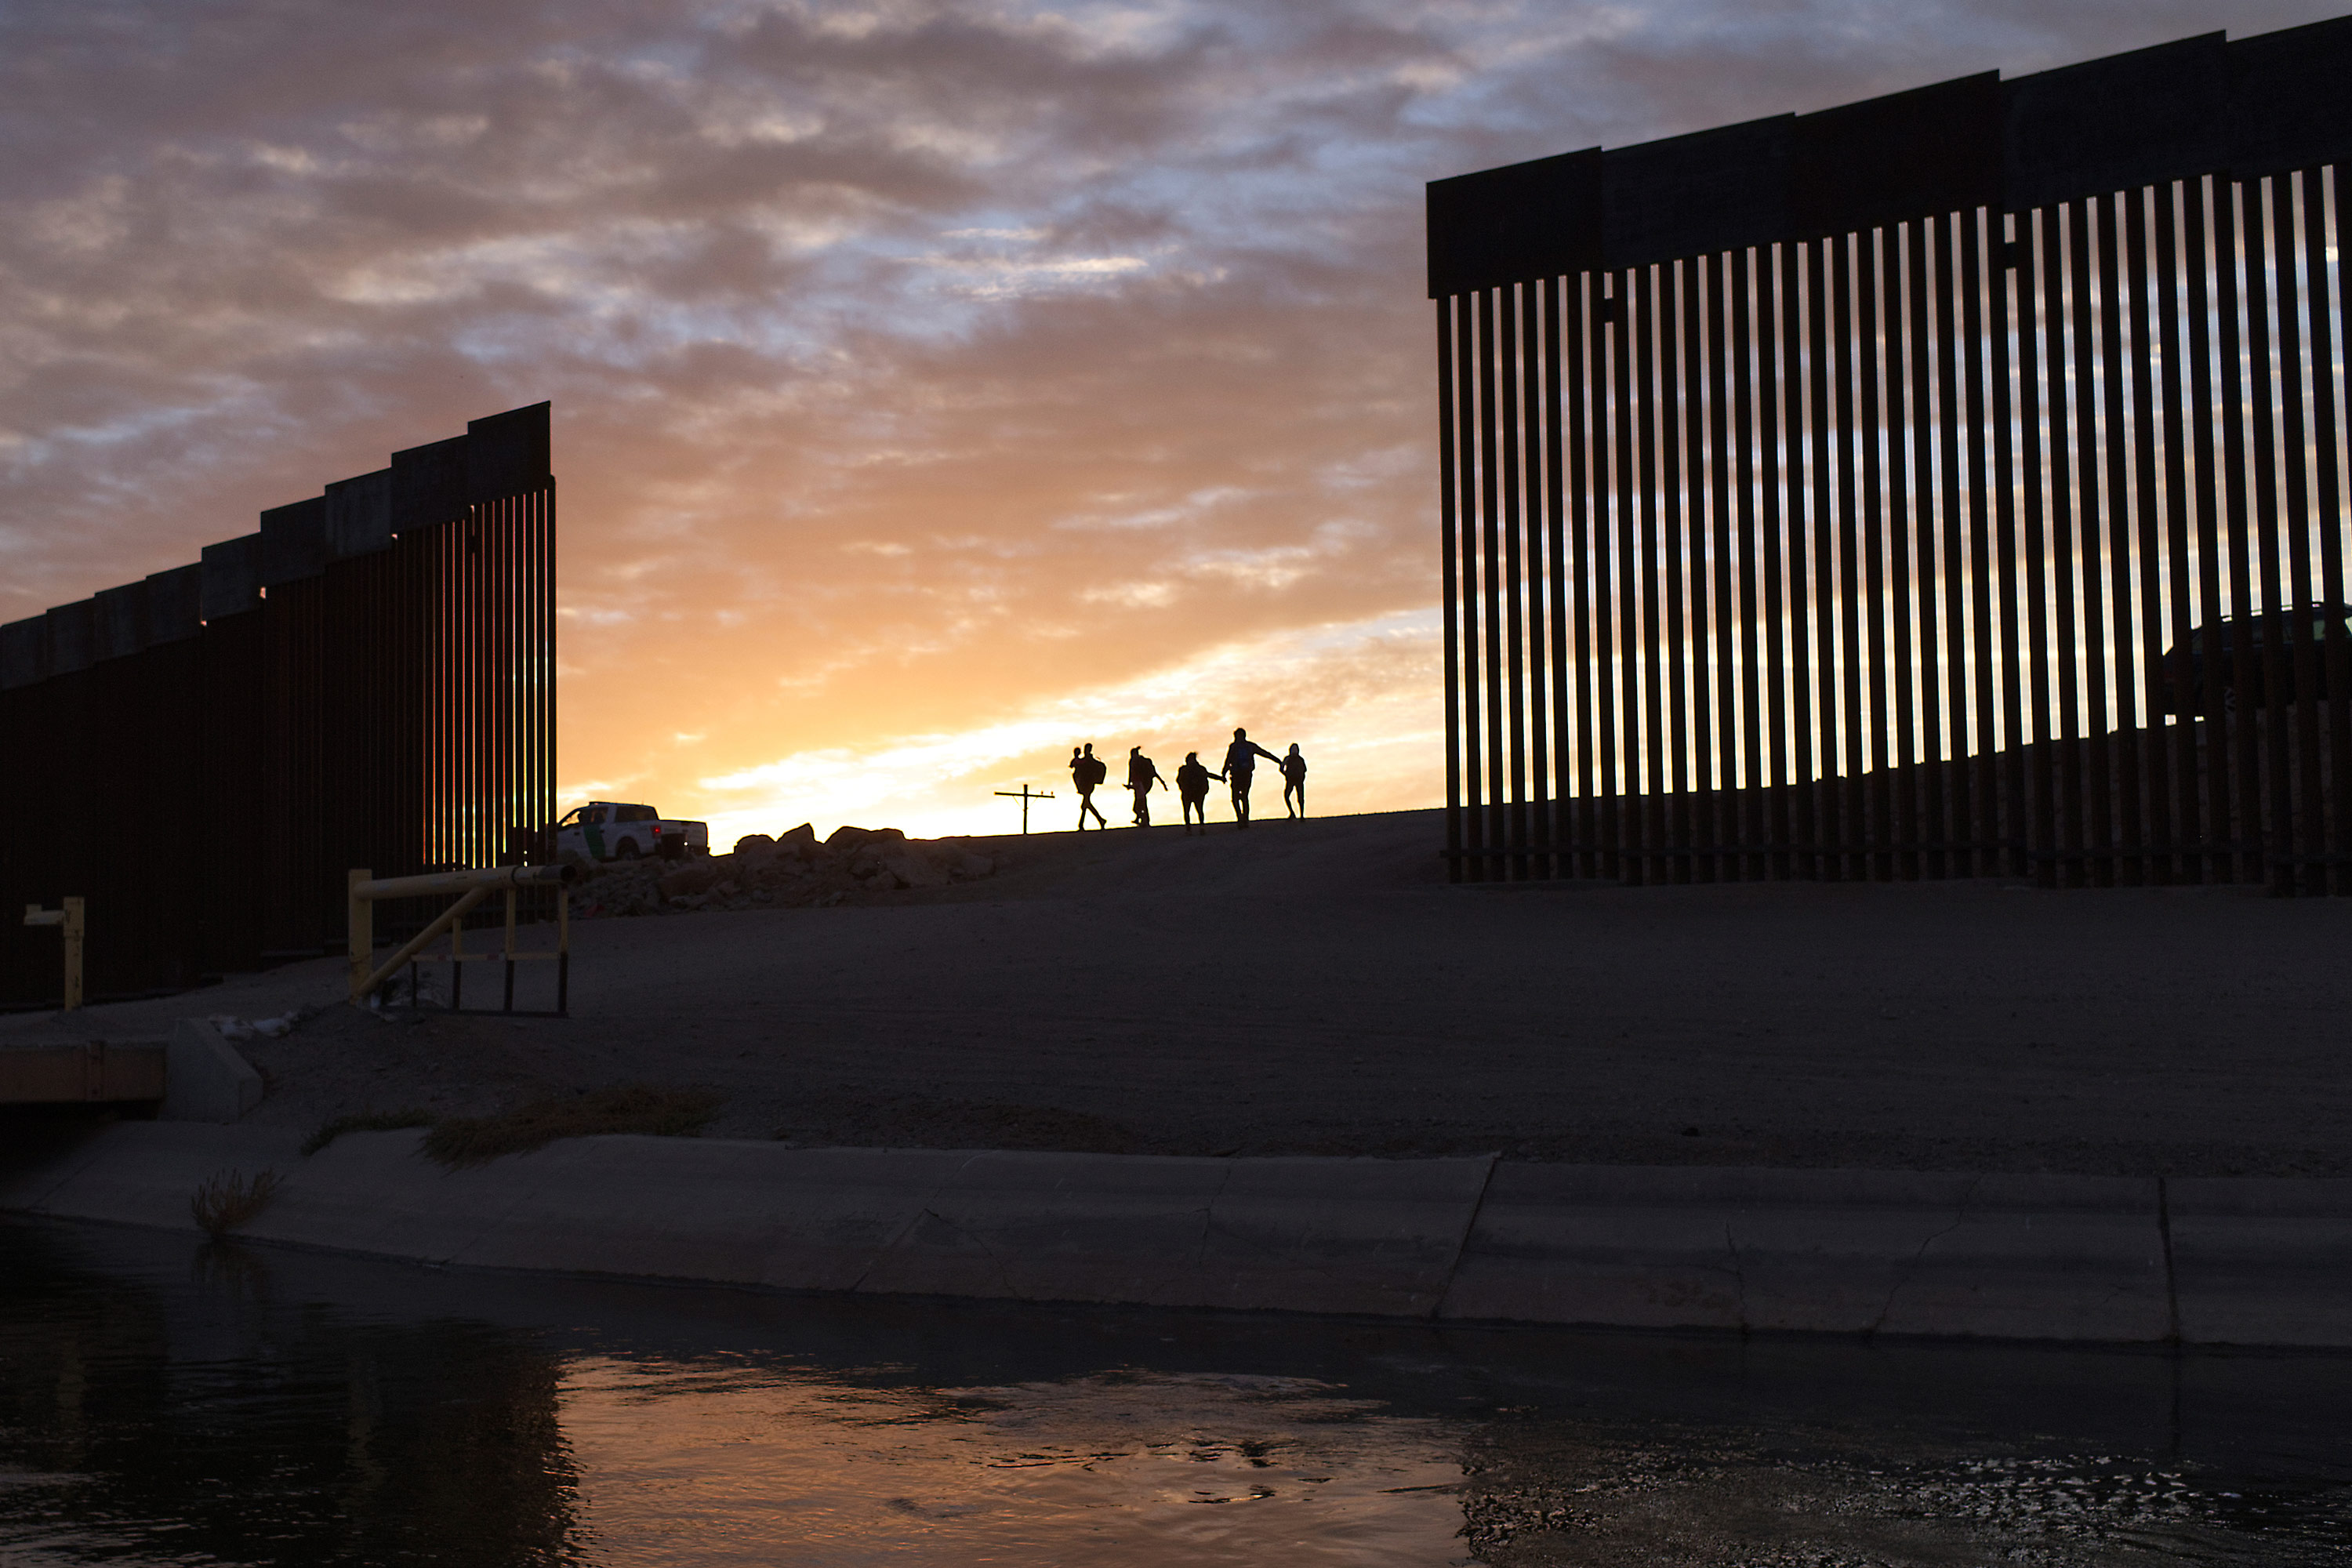 A pair of migrant families from Brazil pass through a gap in the border wall to reach the United States after crossing from Mexico to Yuma, Arizona, to seek asylum on June 10.